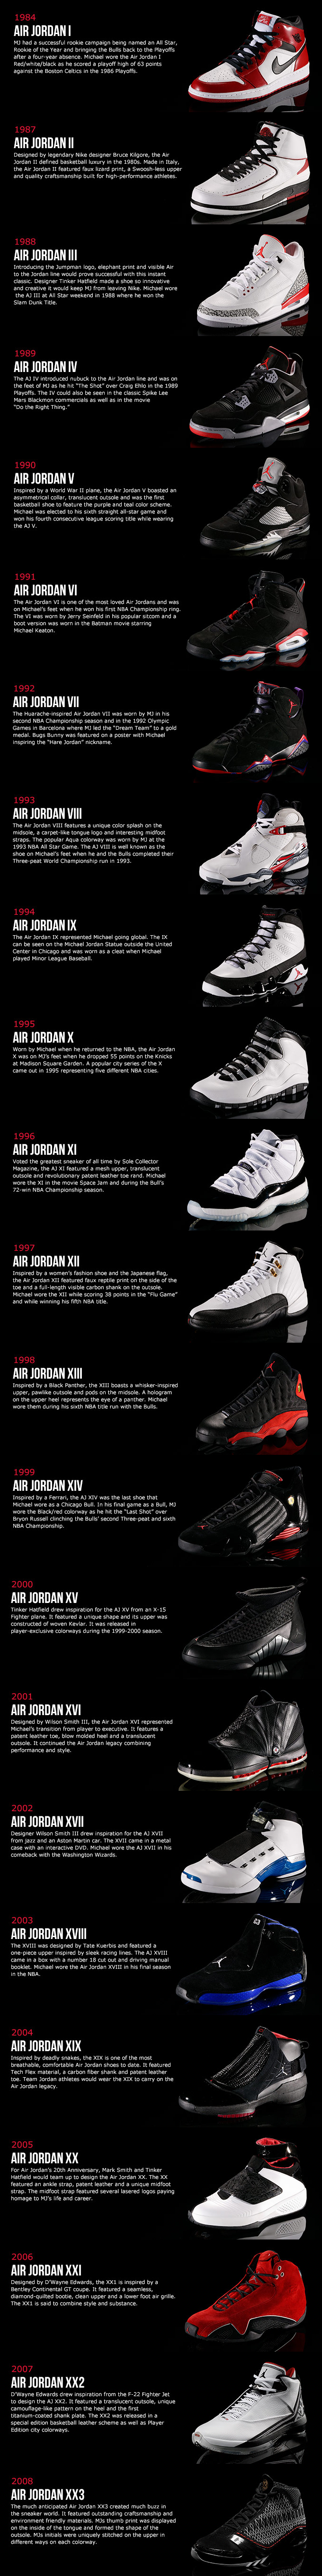 e6eb42f376a1 History of Air Jordan Shoes